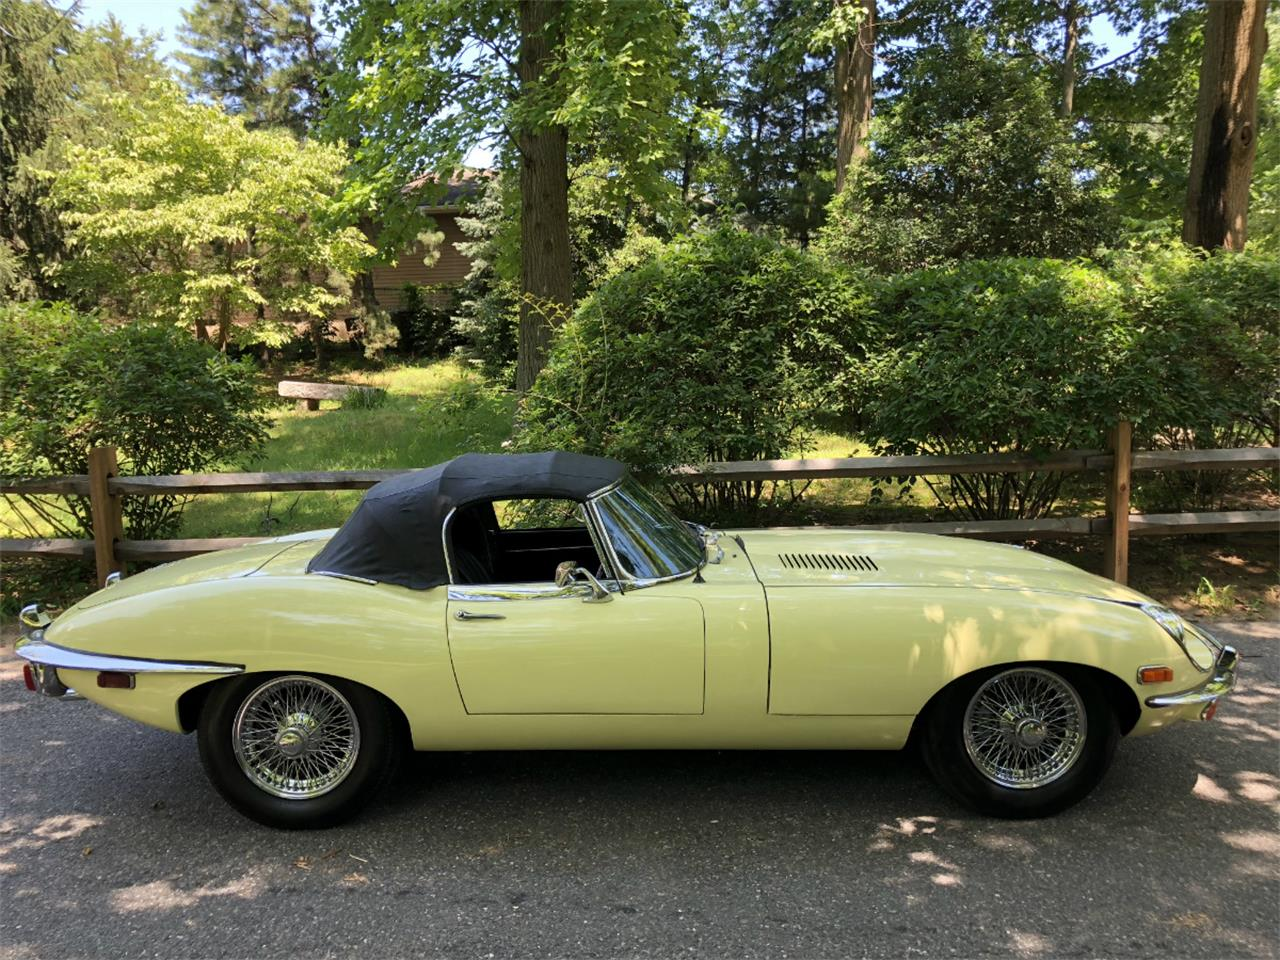 1969 Jaguar XKE Series II (CC-1247458) for sale in WOODBURY, New Jersey